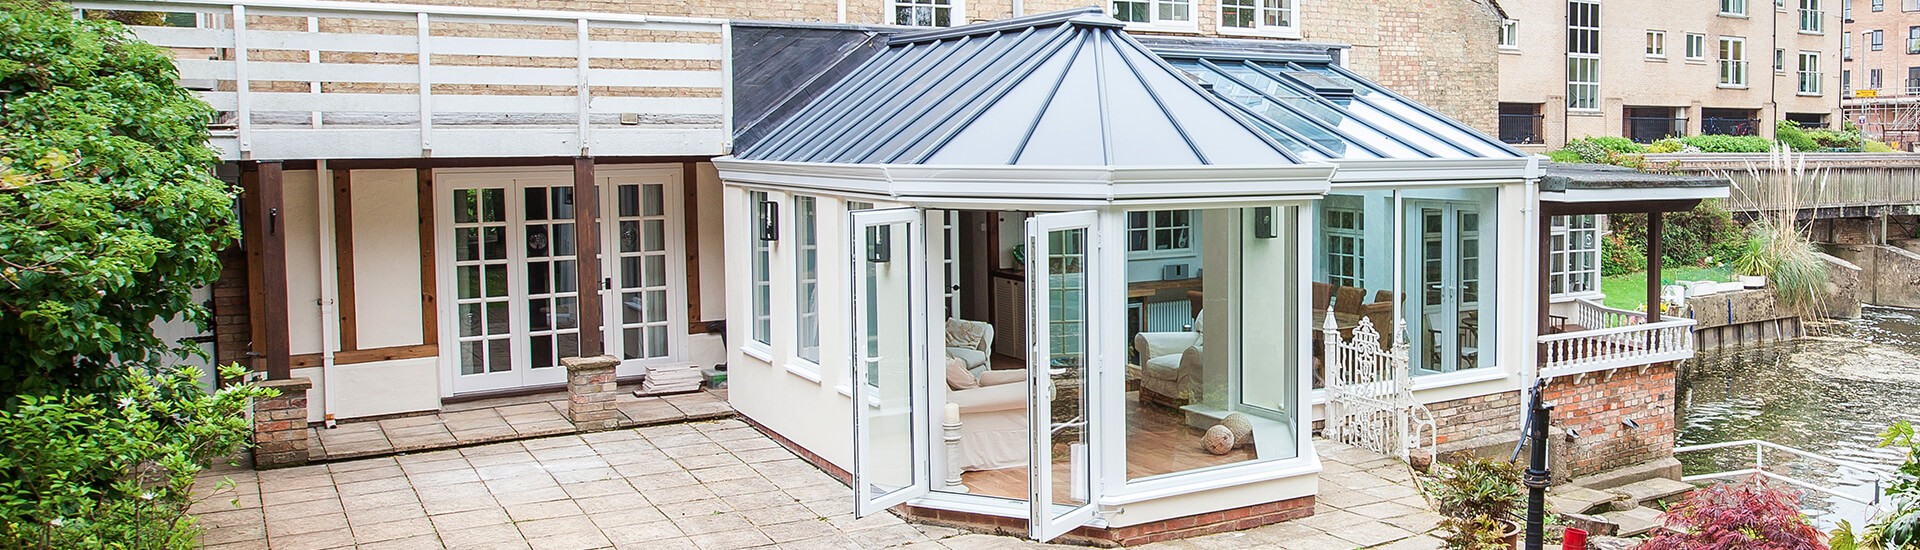 Up To 35 Off P Shaped Conservatories In Essex Amp South